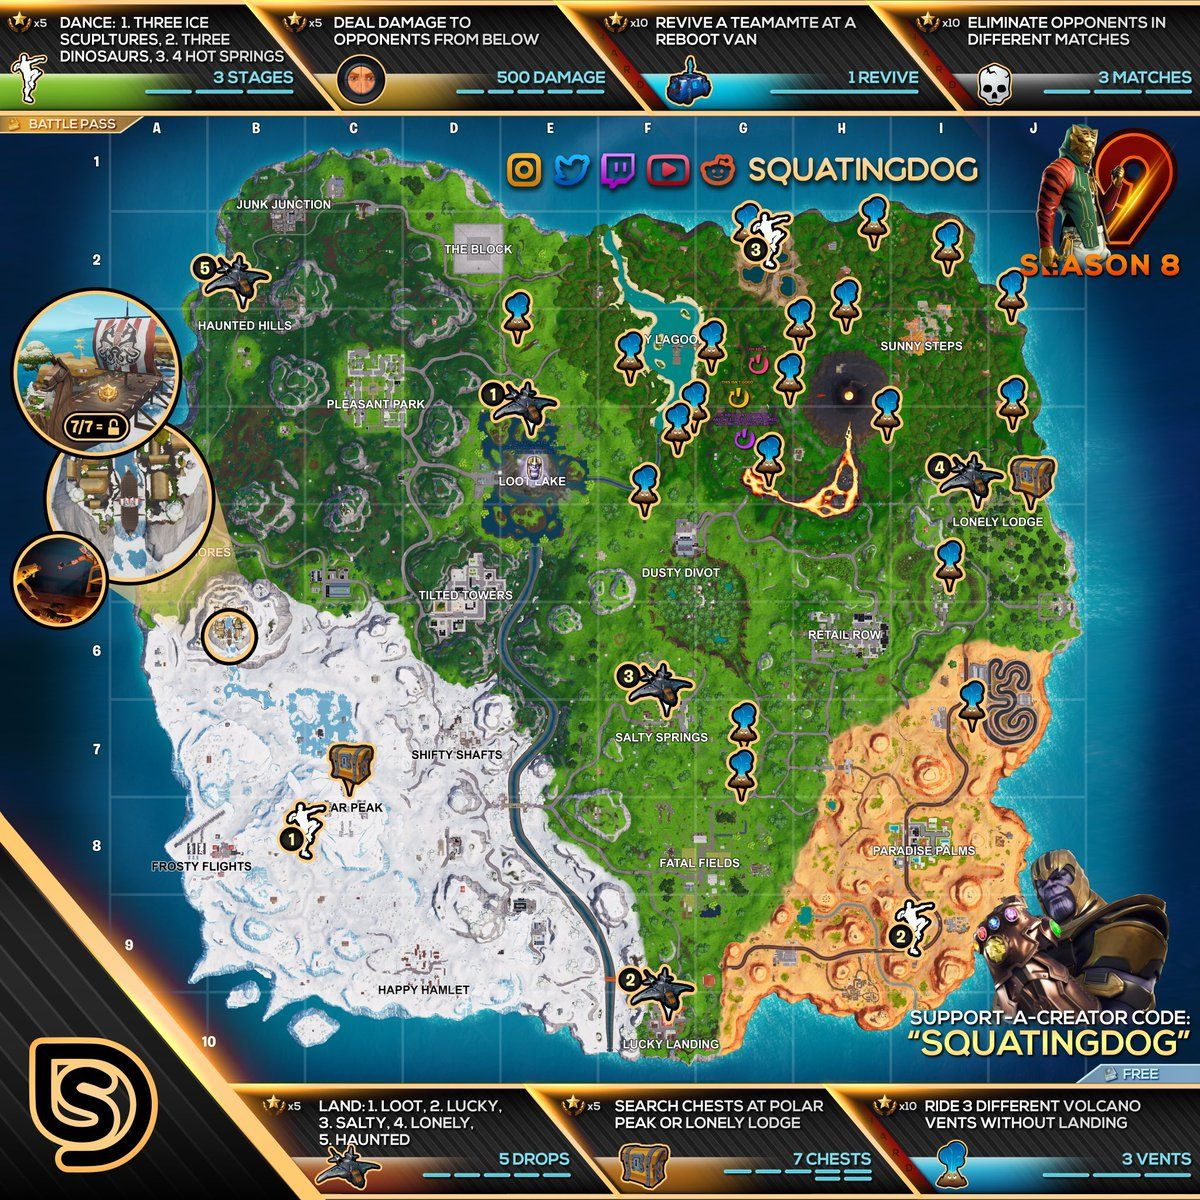 Mapa De Gnomos Fortnite.Fortnite Cheat Sheet Map For Season 8 Week 9 Challenges